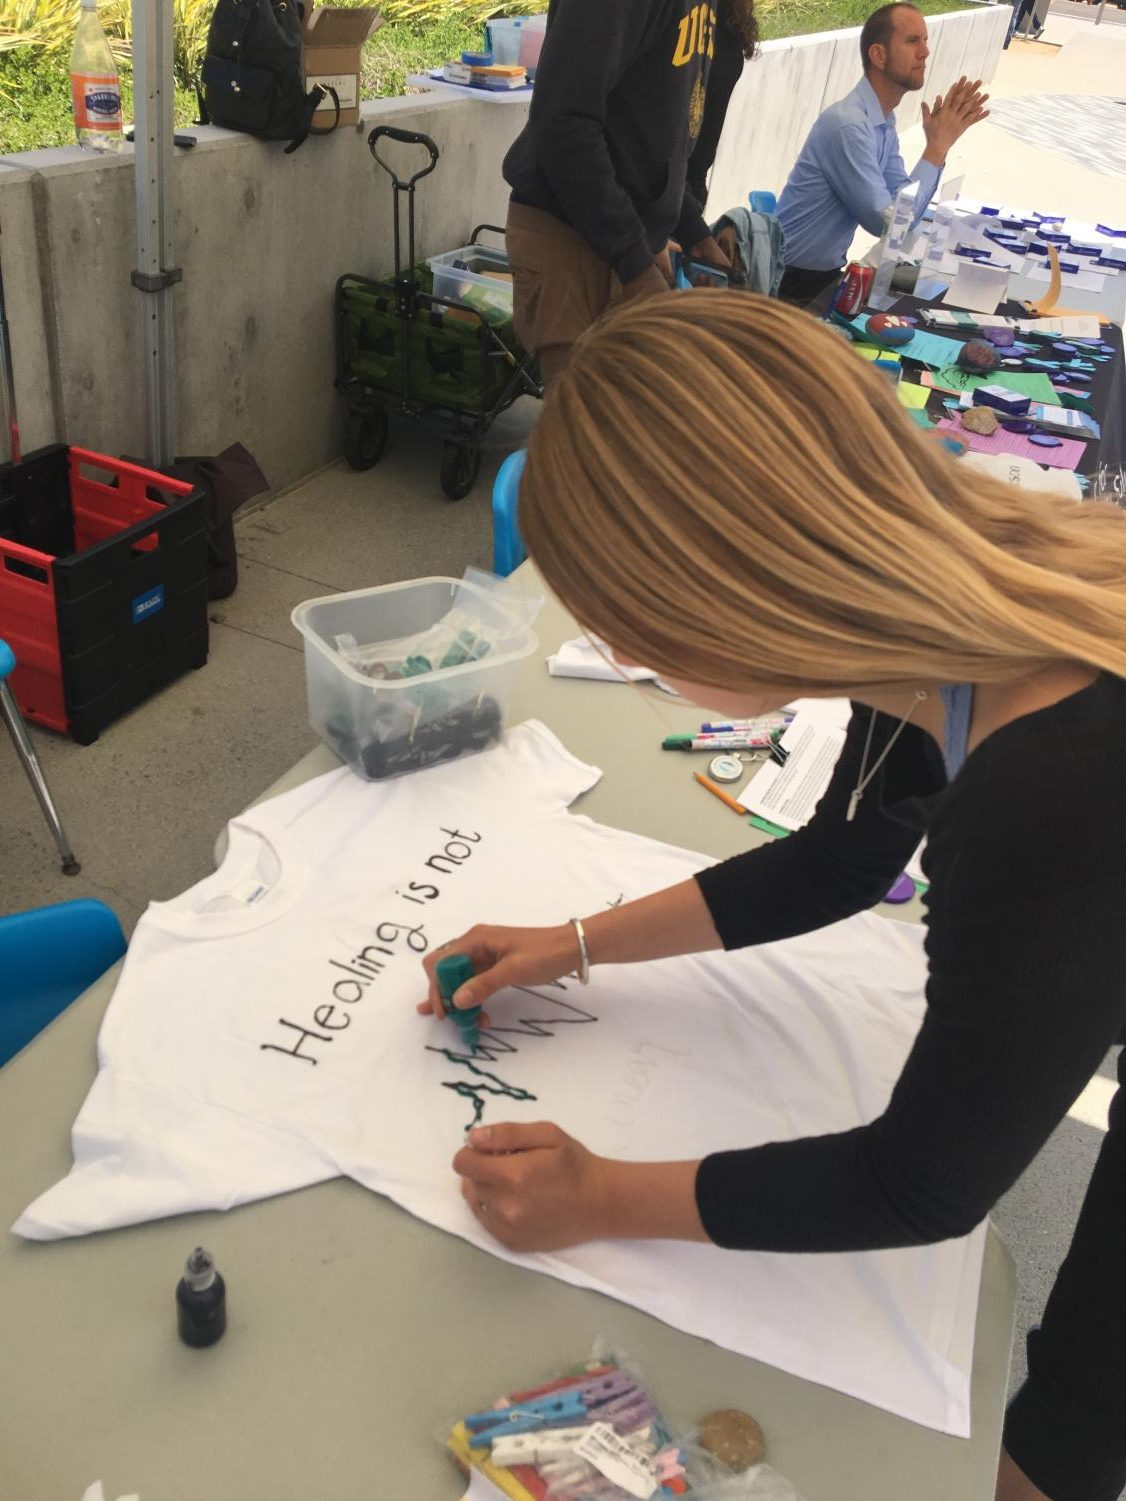 Emily Hanes, student, decorates a t-shirt with a supportive message for the Clothesline Project.